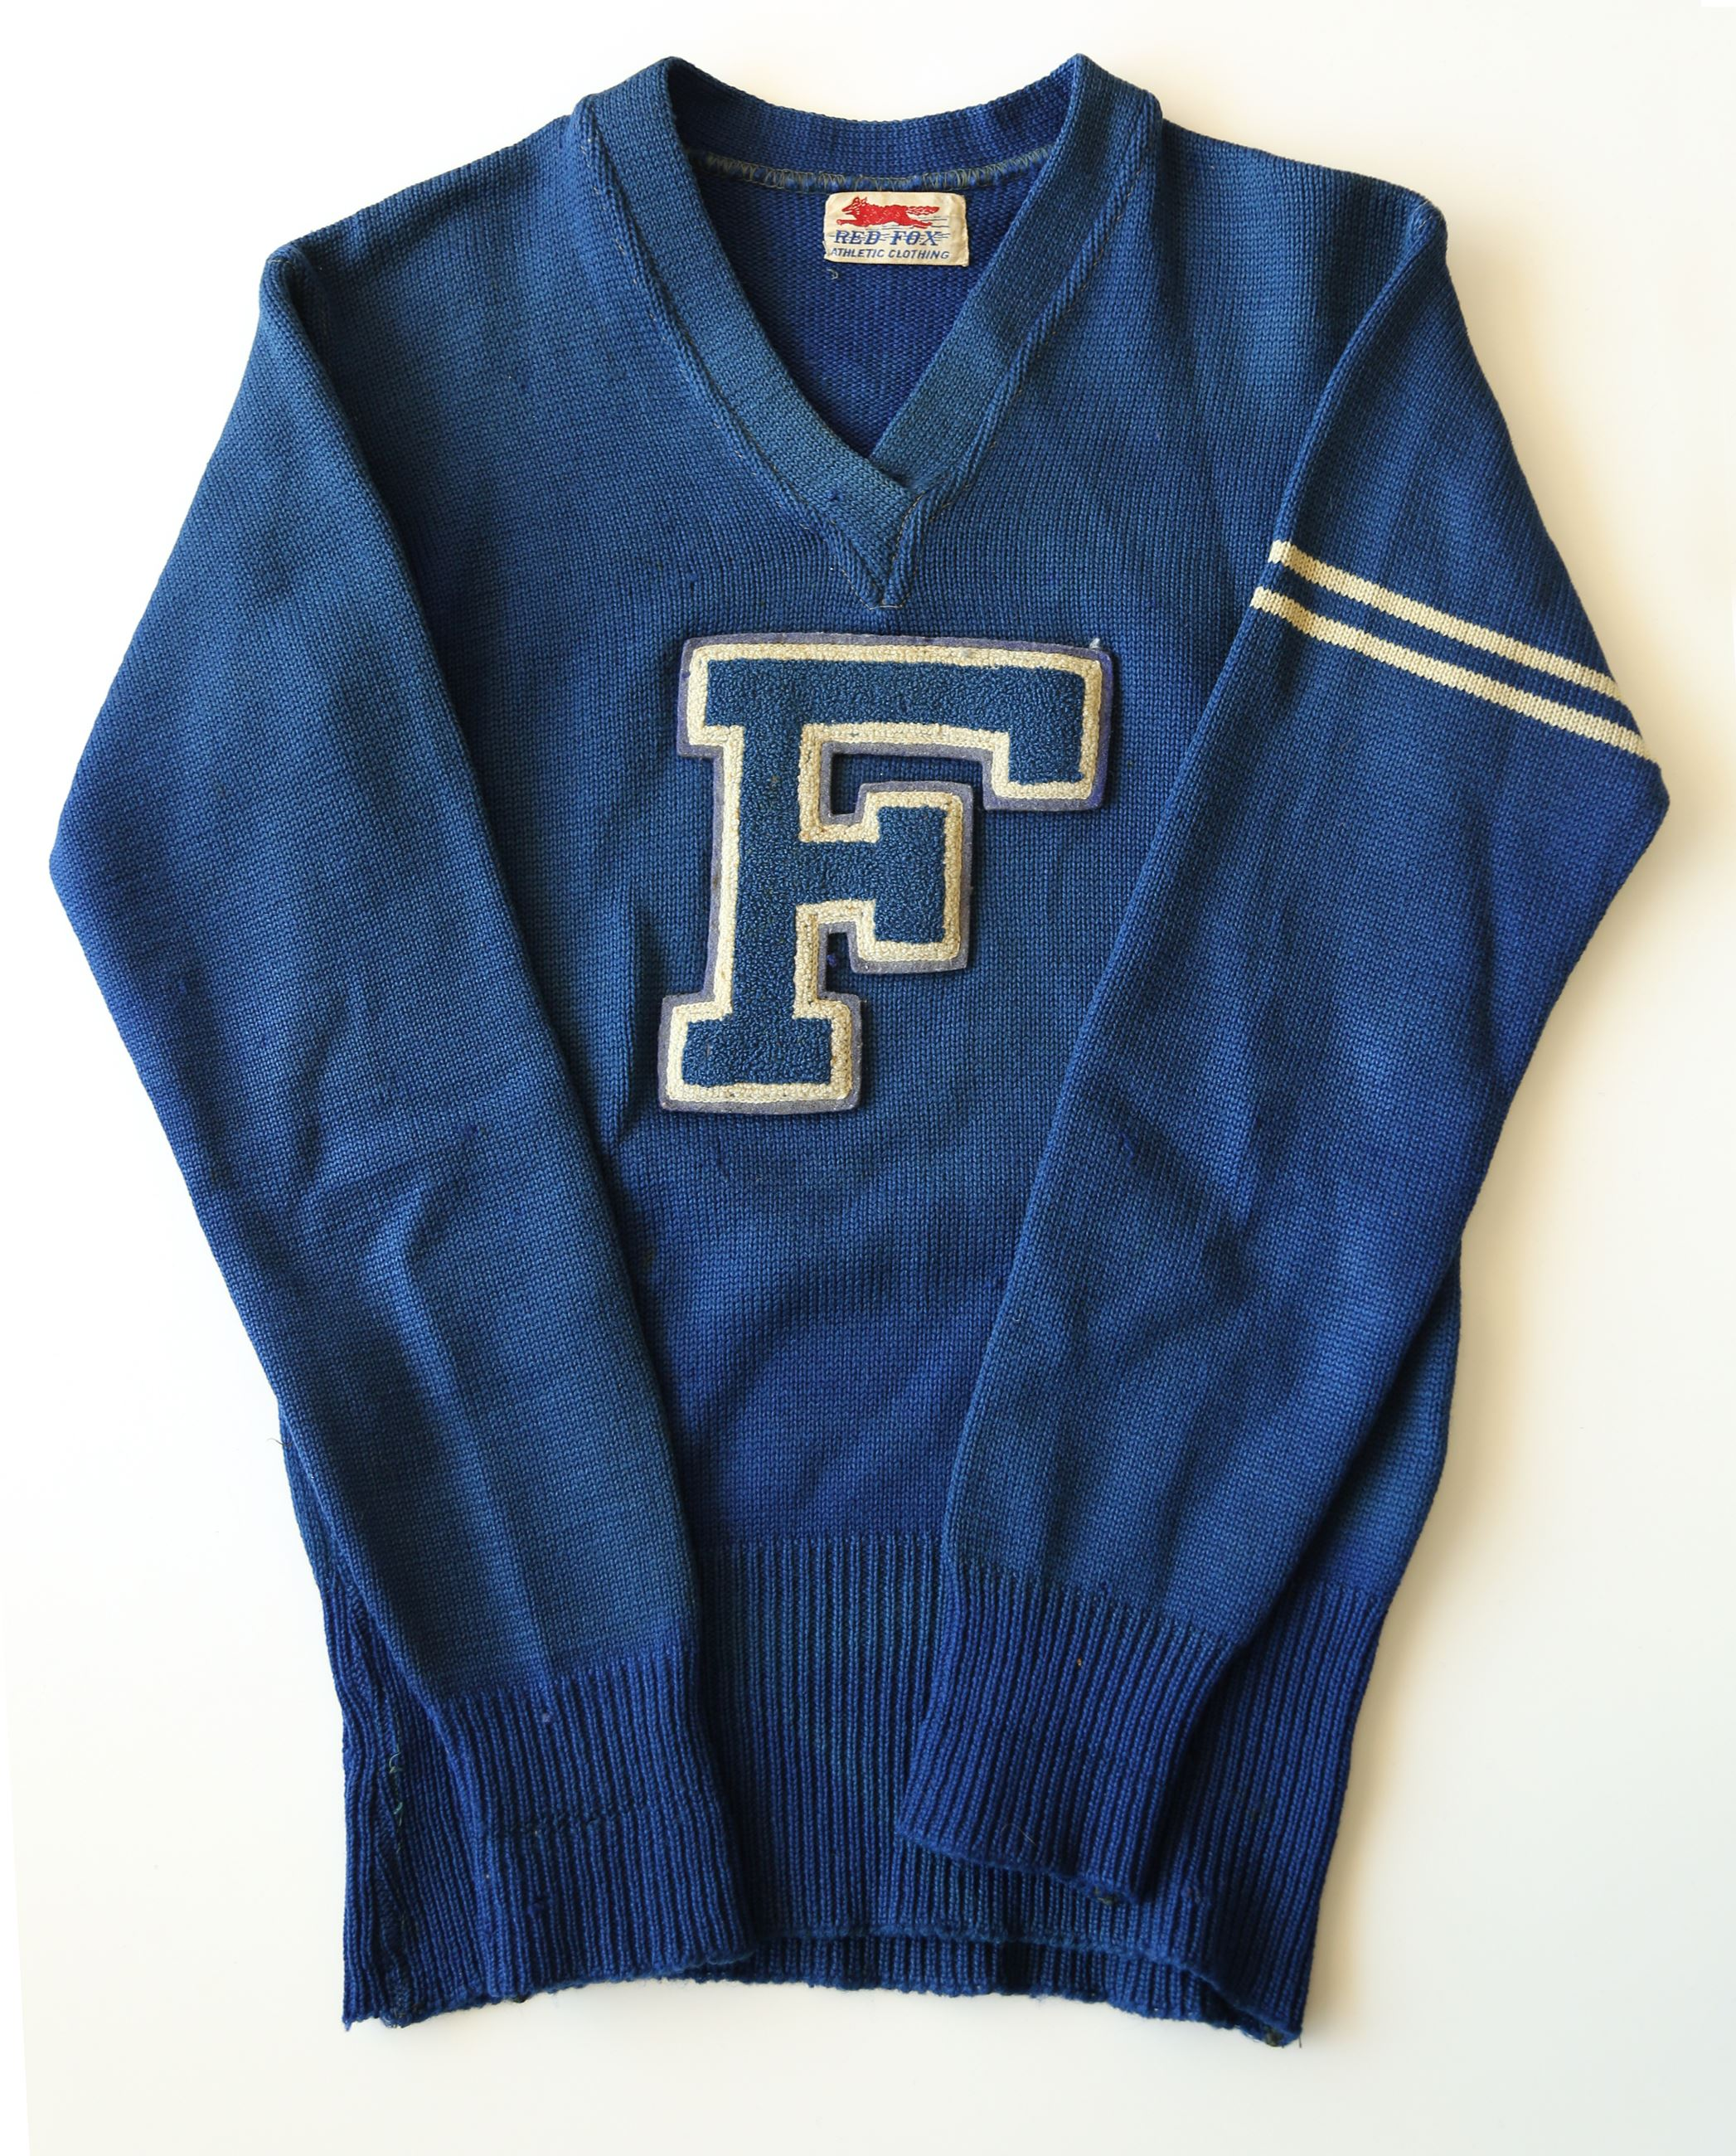 1934 Fate Club Football sweater was worn by Robert Pershing -Peanut - Harris